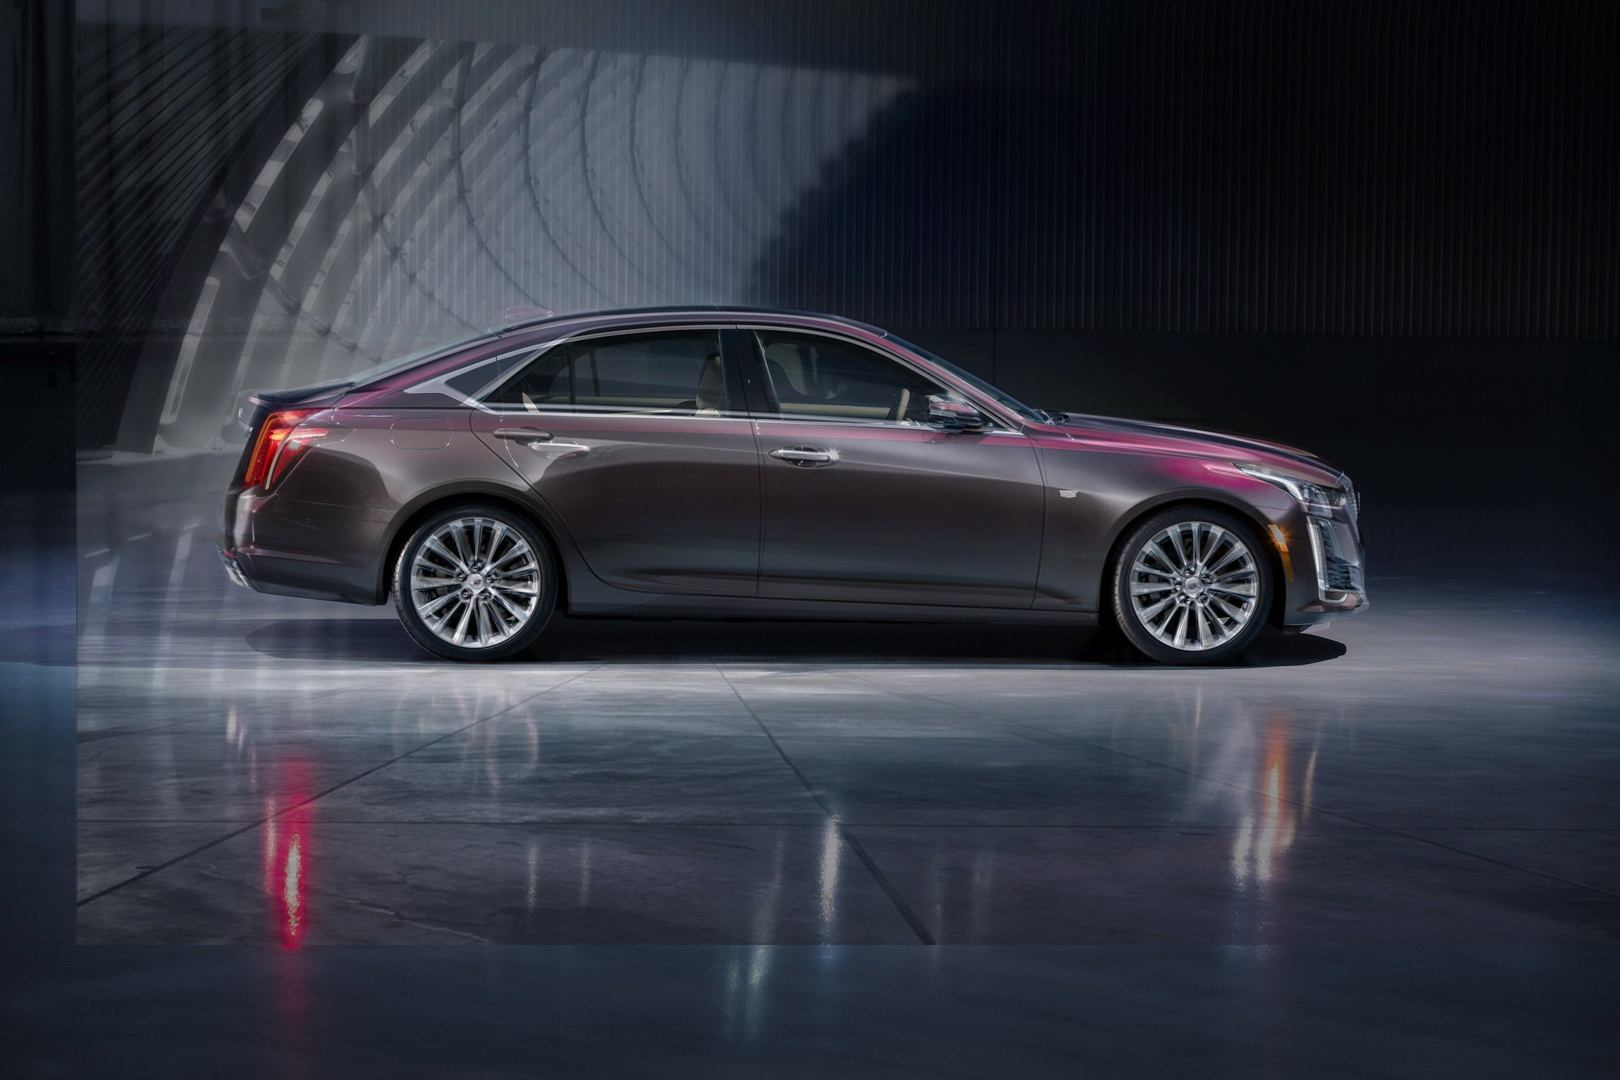 2020 Cadillac CT5 Is A Bold Replacement For The ATS And CTS | Carscoops